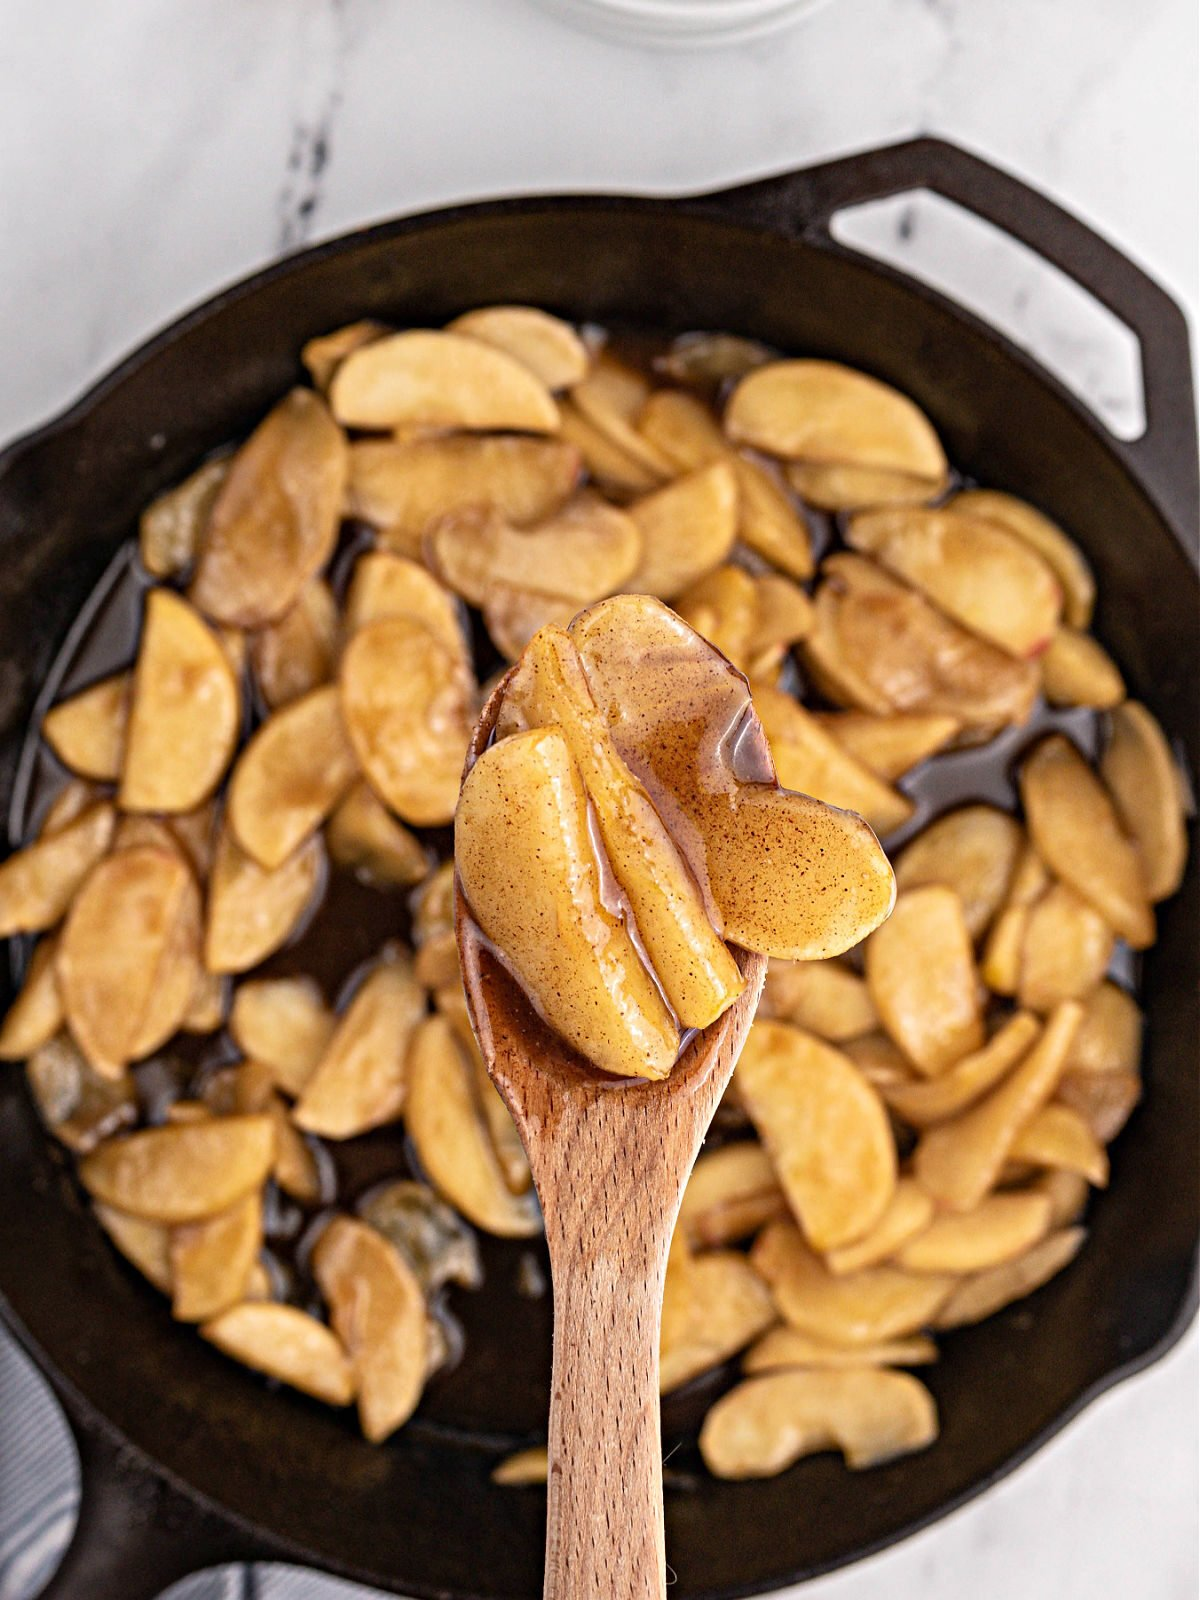 Wooden spoon holding fried apple slices over a cast iron skillet.